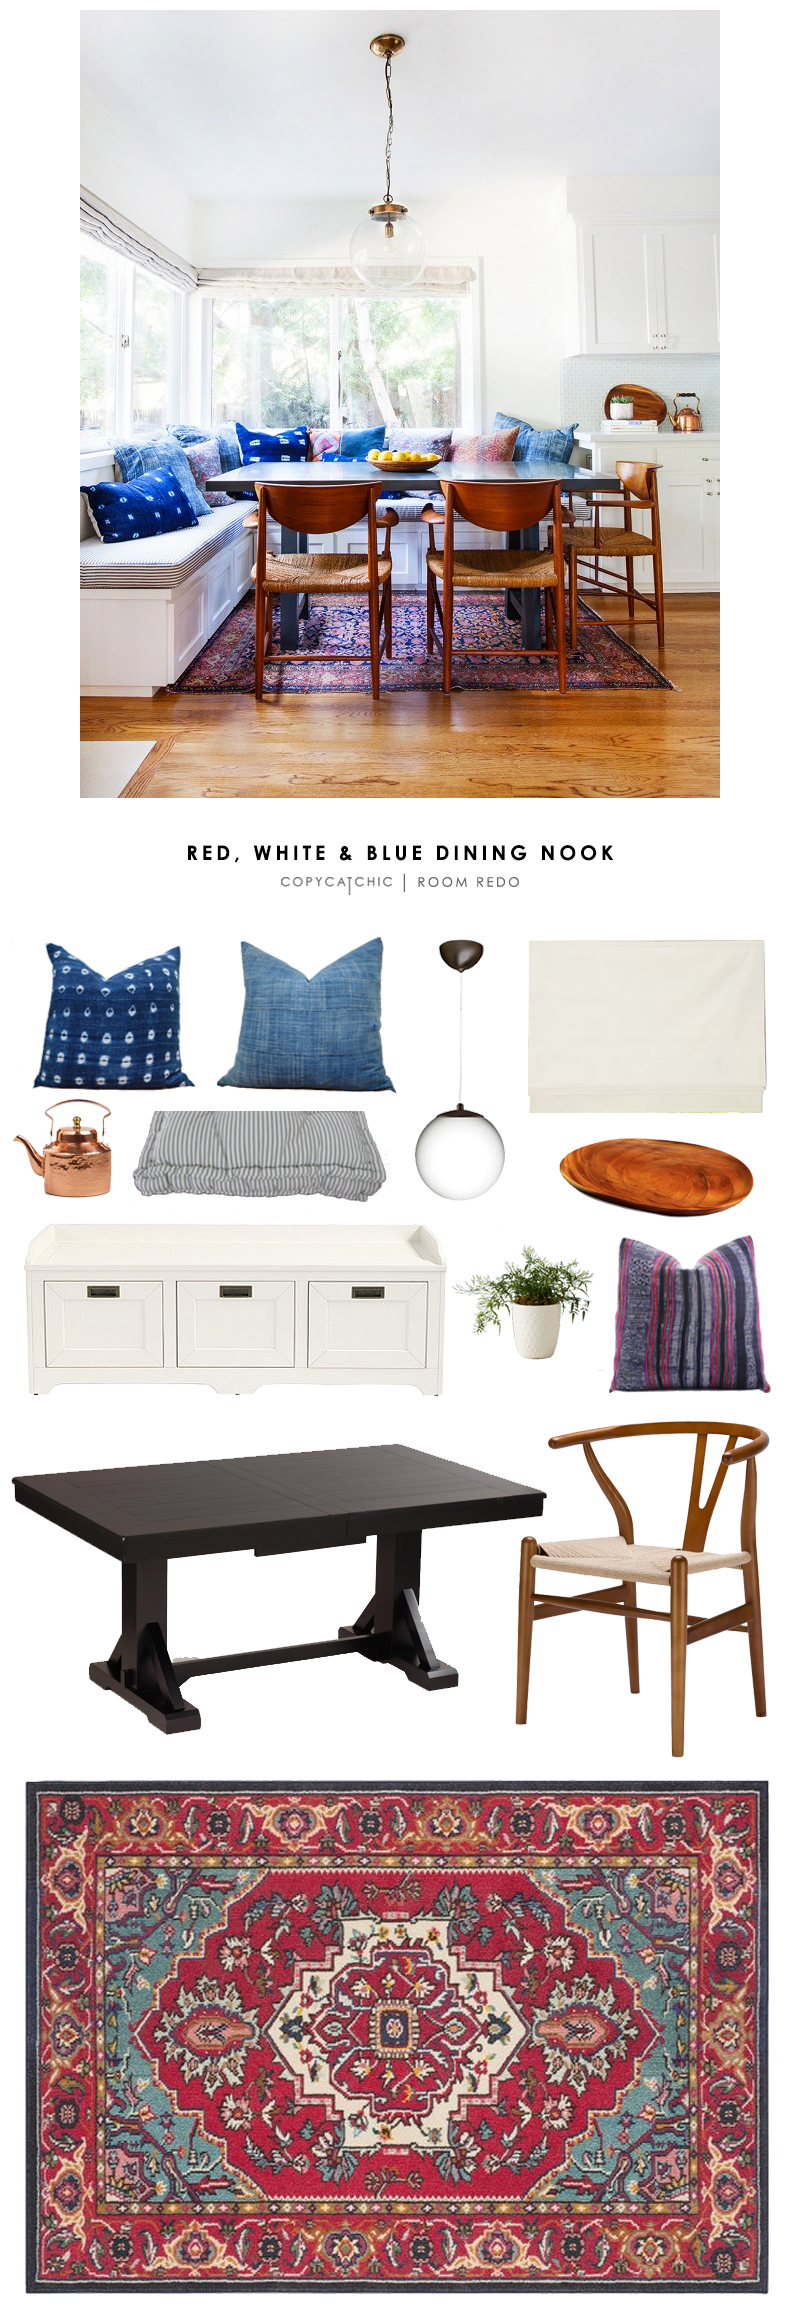 Copy Cat Chic Room Redo | Red, White, and Blue Dining Nook - copycatchic